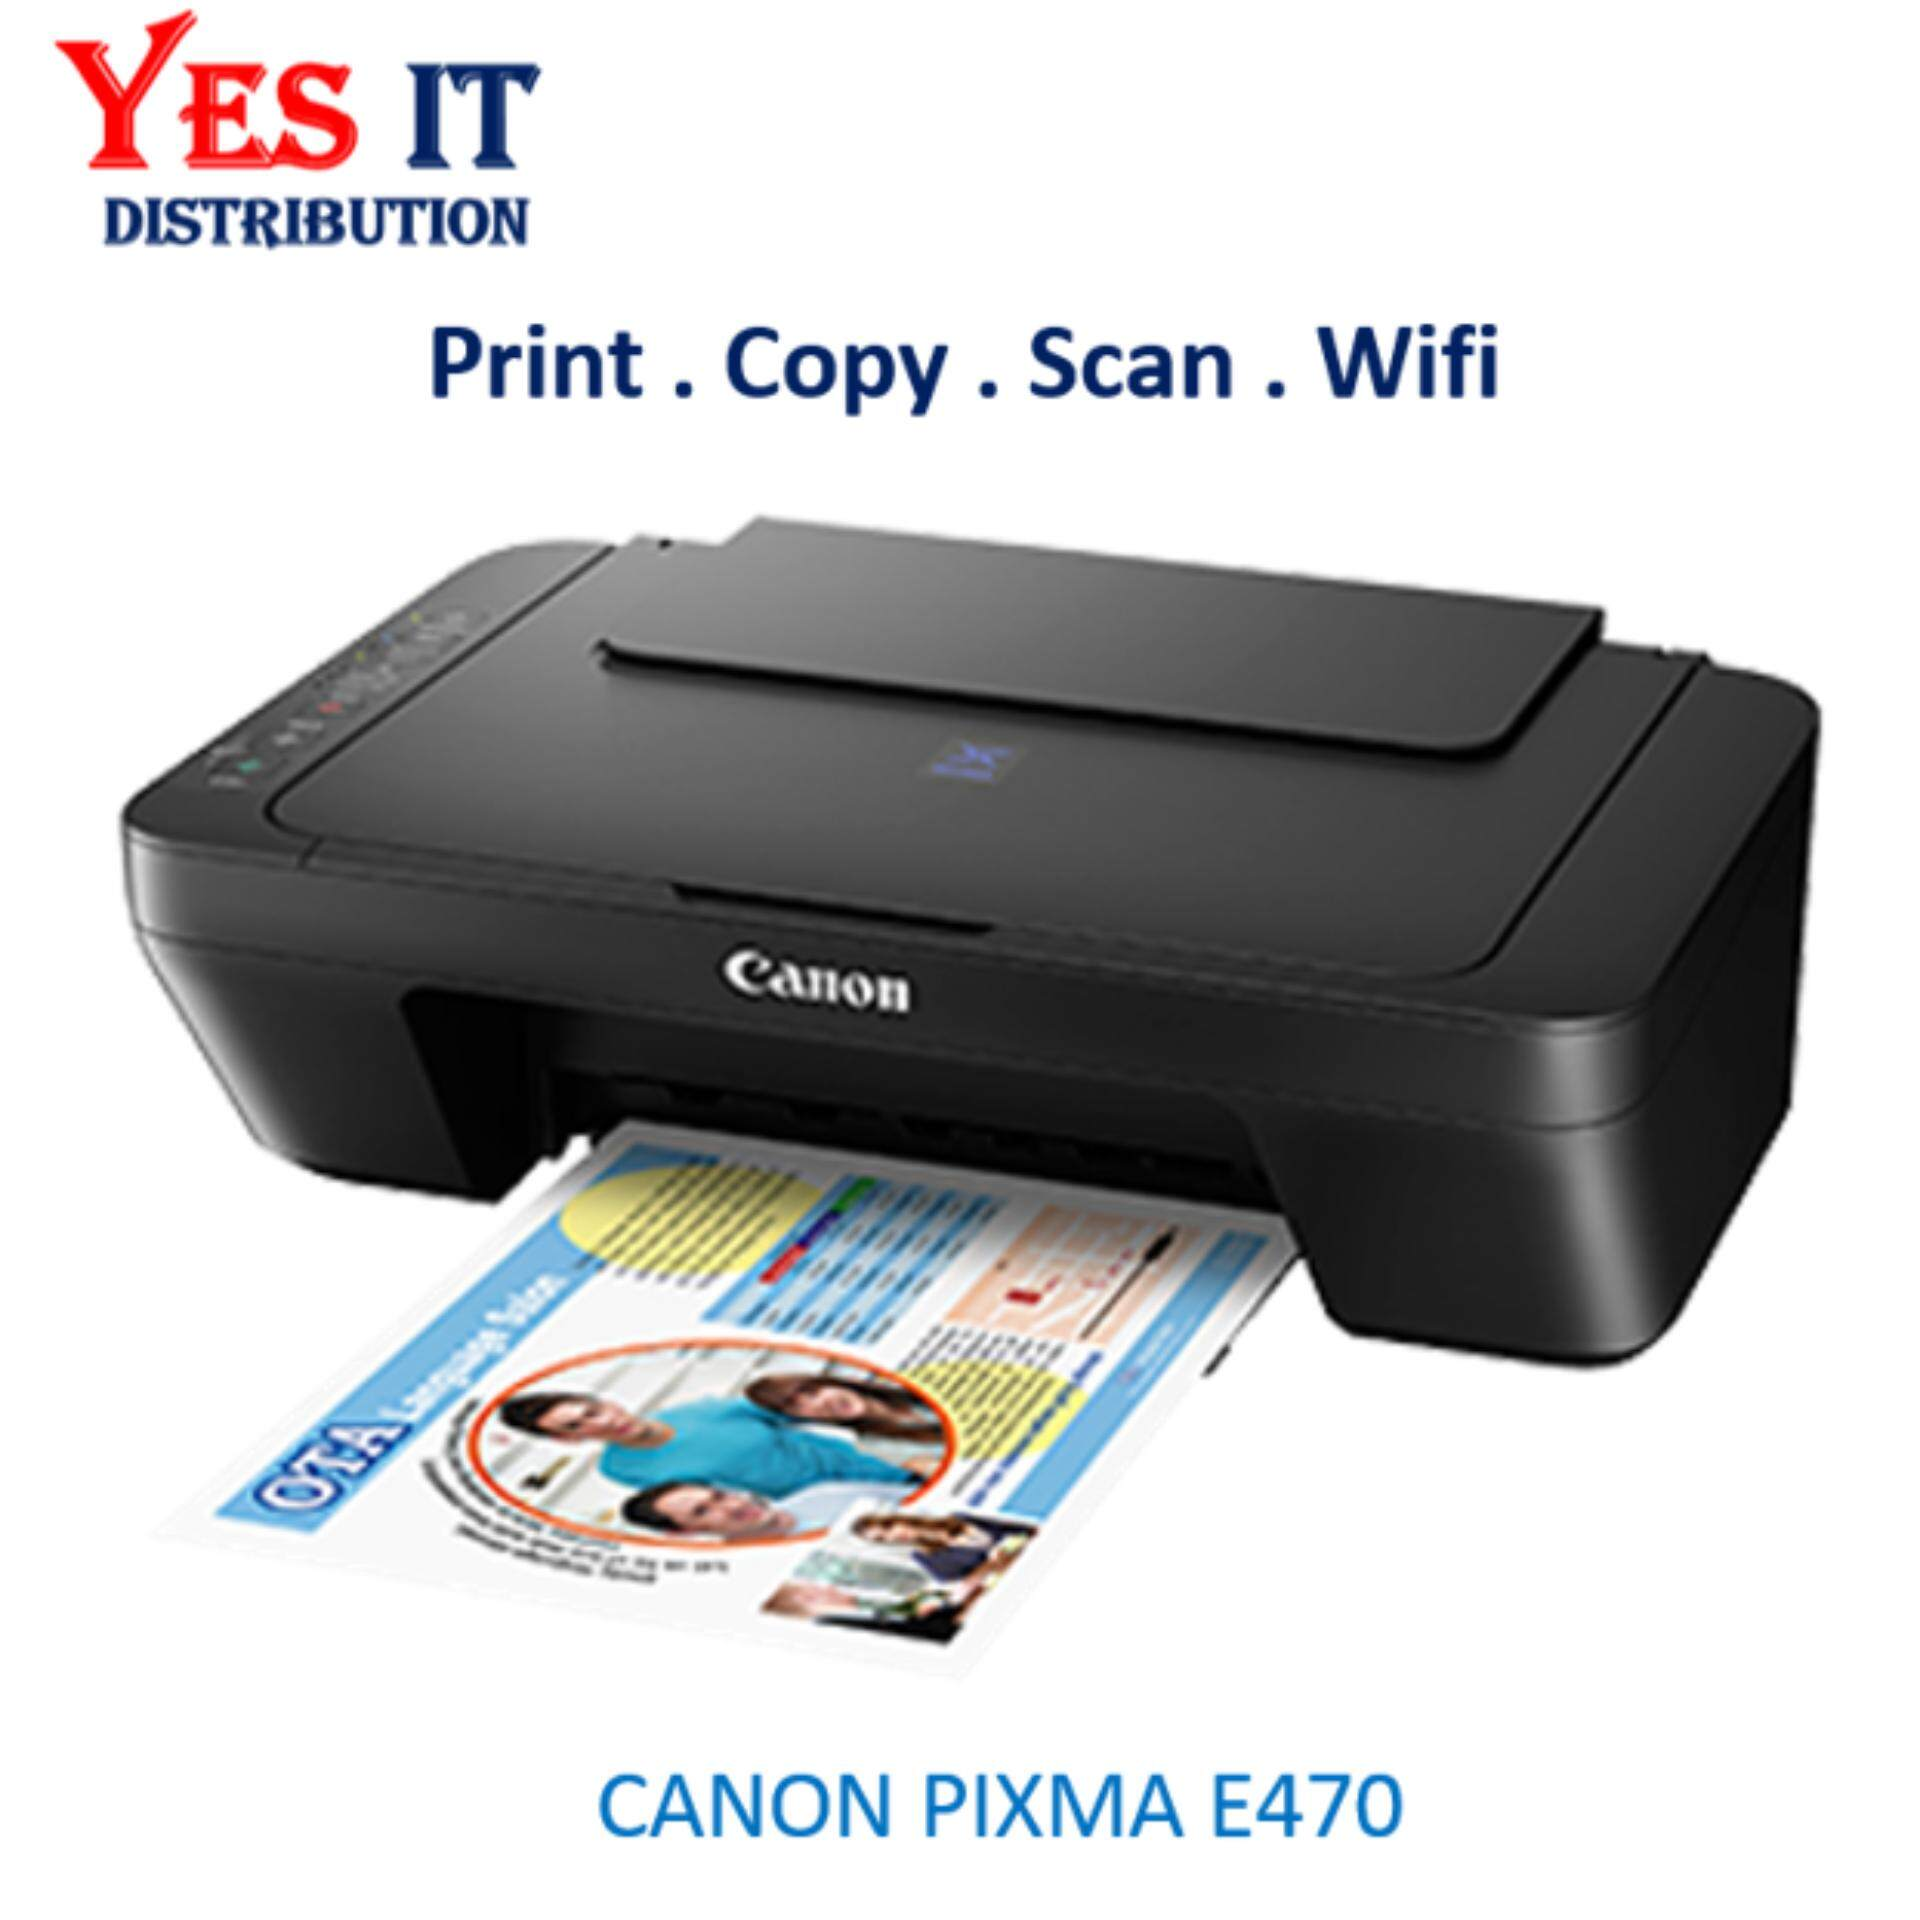 Sell Canon Printer Pixma Cheapest Best Quality My Store Tinta 790 Cyan Ori For G1000 G2000 G3000 Myr 234